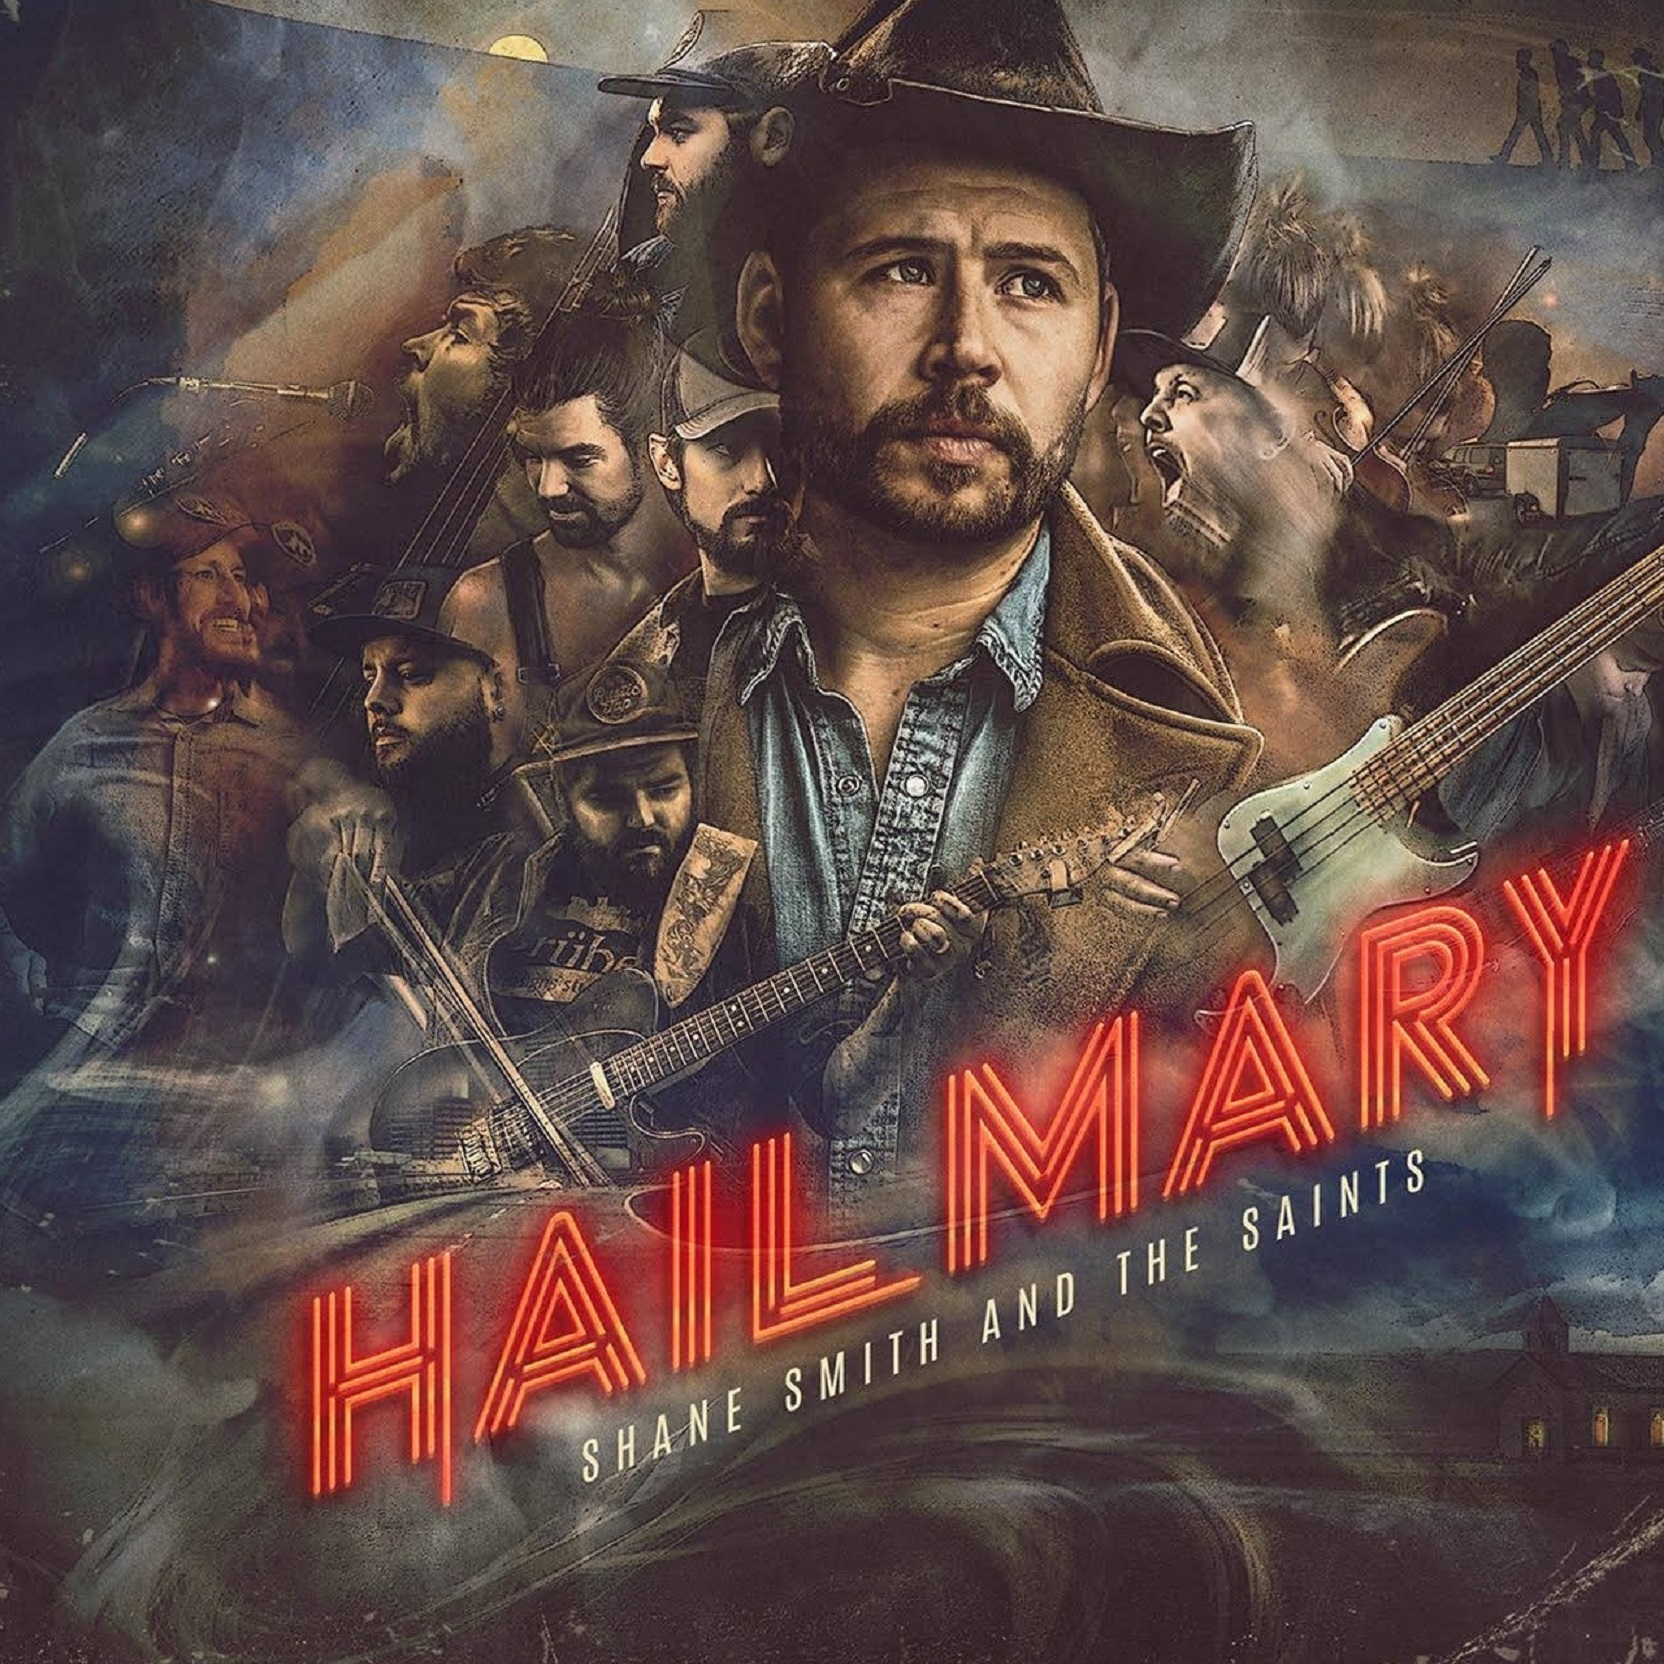 Shane Smith & The Saints New Album, Hail Mary, Out Now